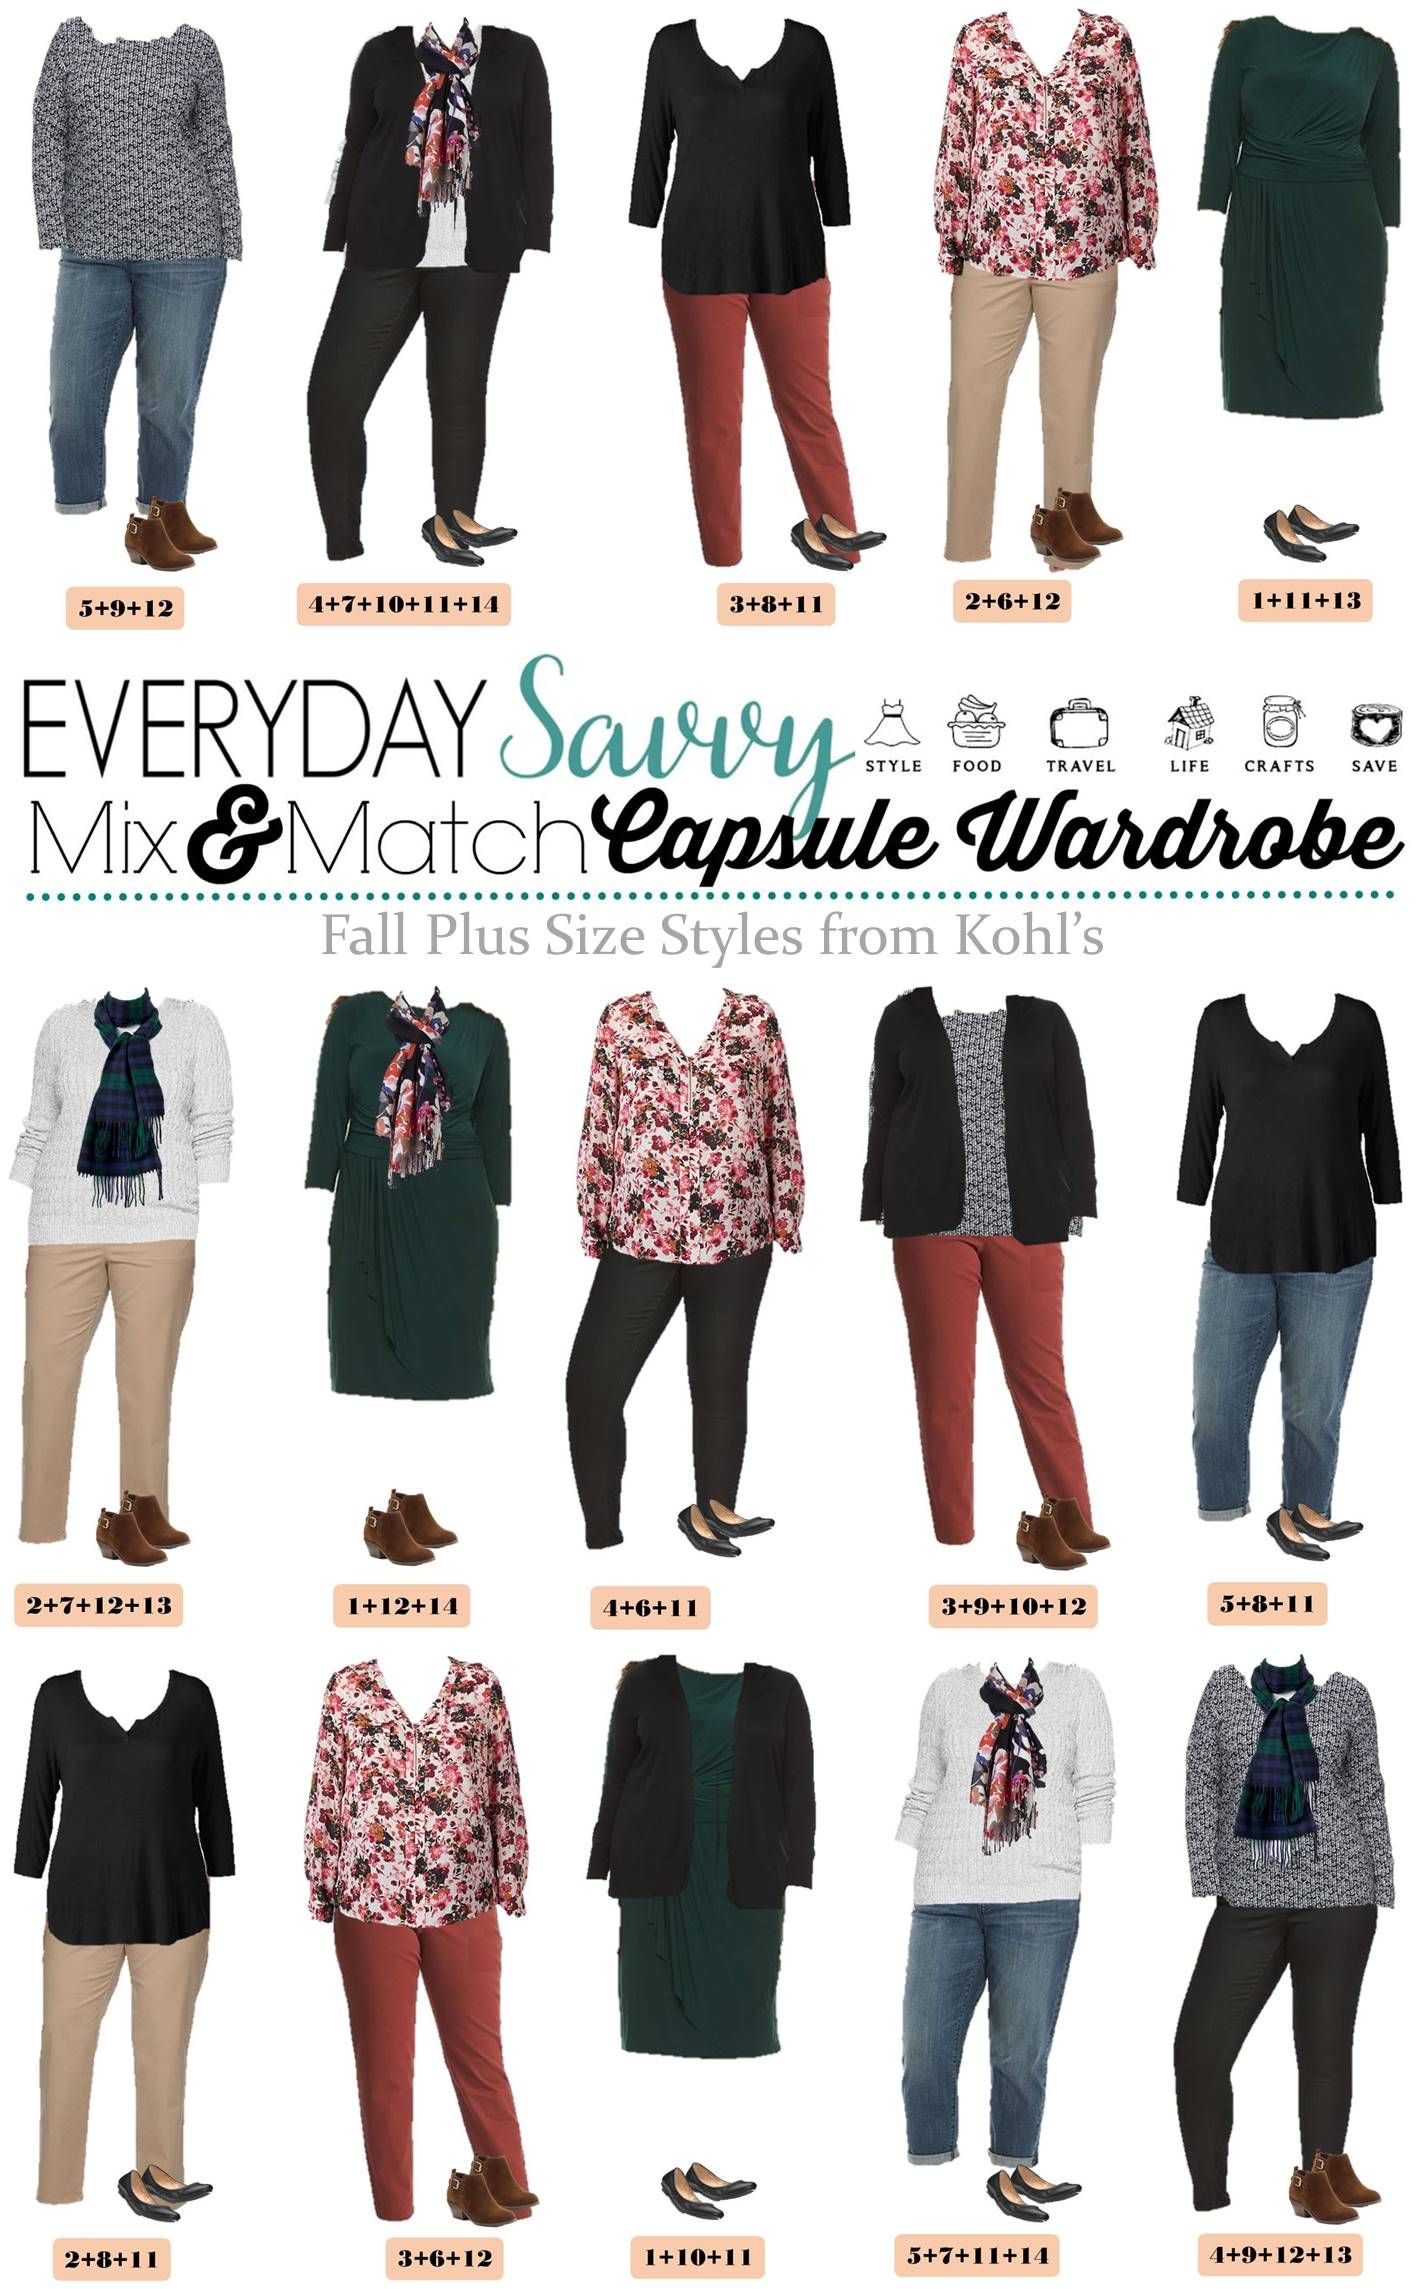 Fall Plus Size Outfits From Kohls